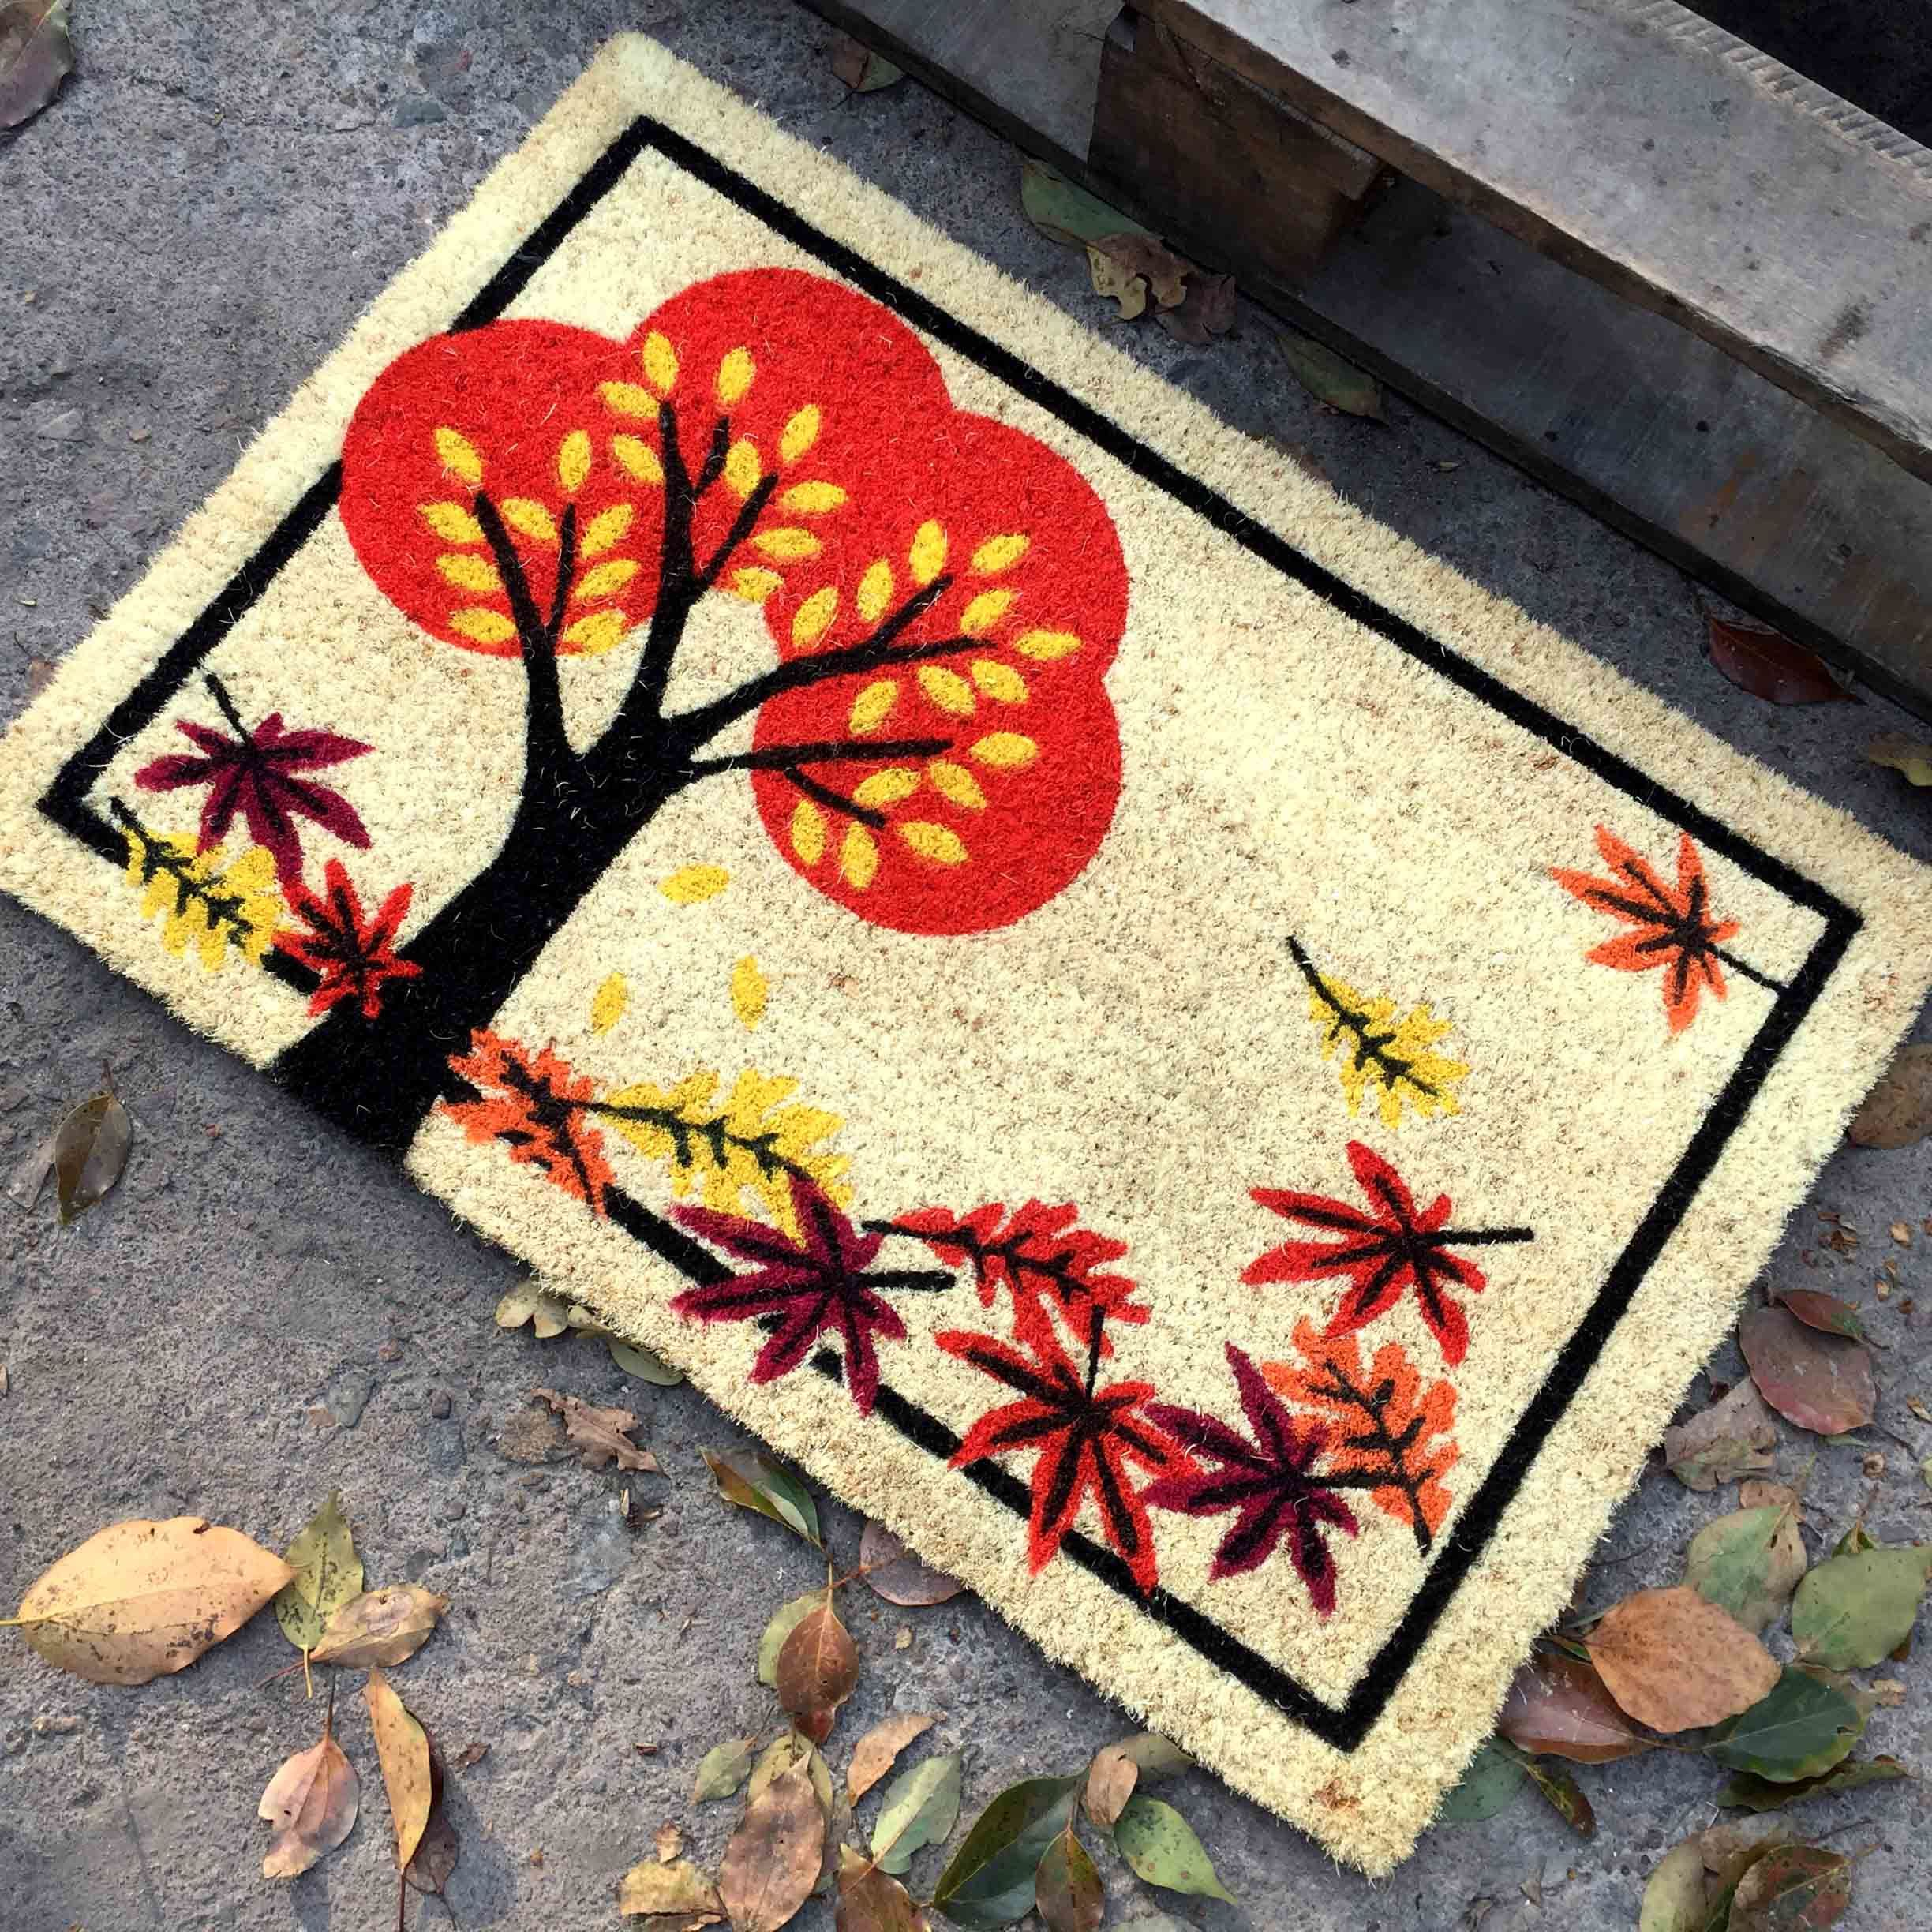 Factory Supplier Direct Beautiful Colorful Cocos Fiber Sublimation Printed Scrapper Indoor Outdoor Coir Coco Fibers Coconut Door Mats